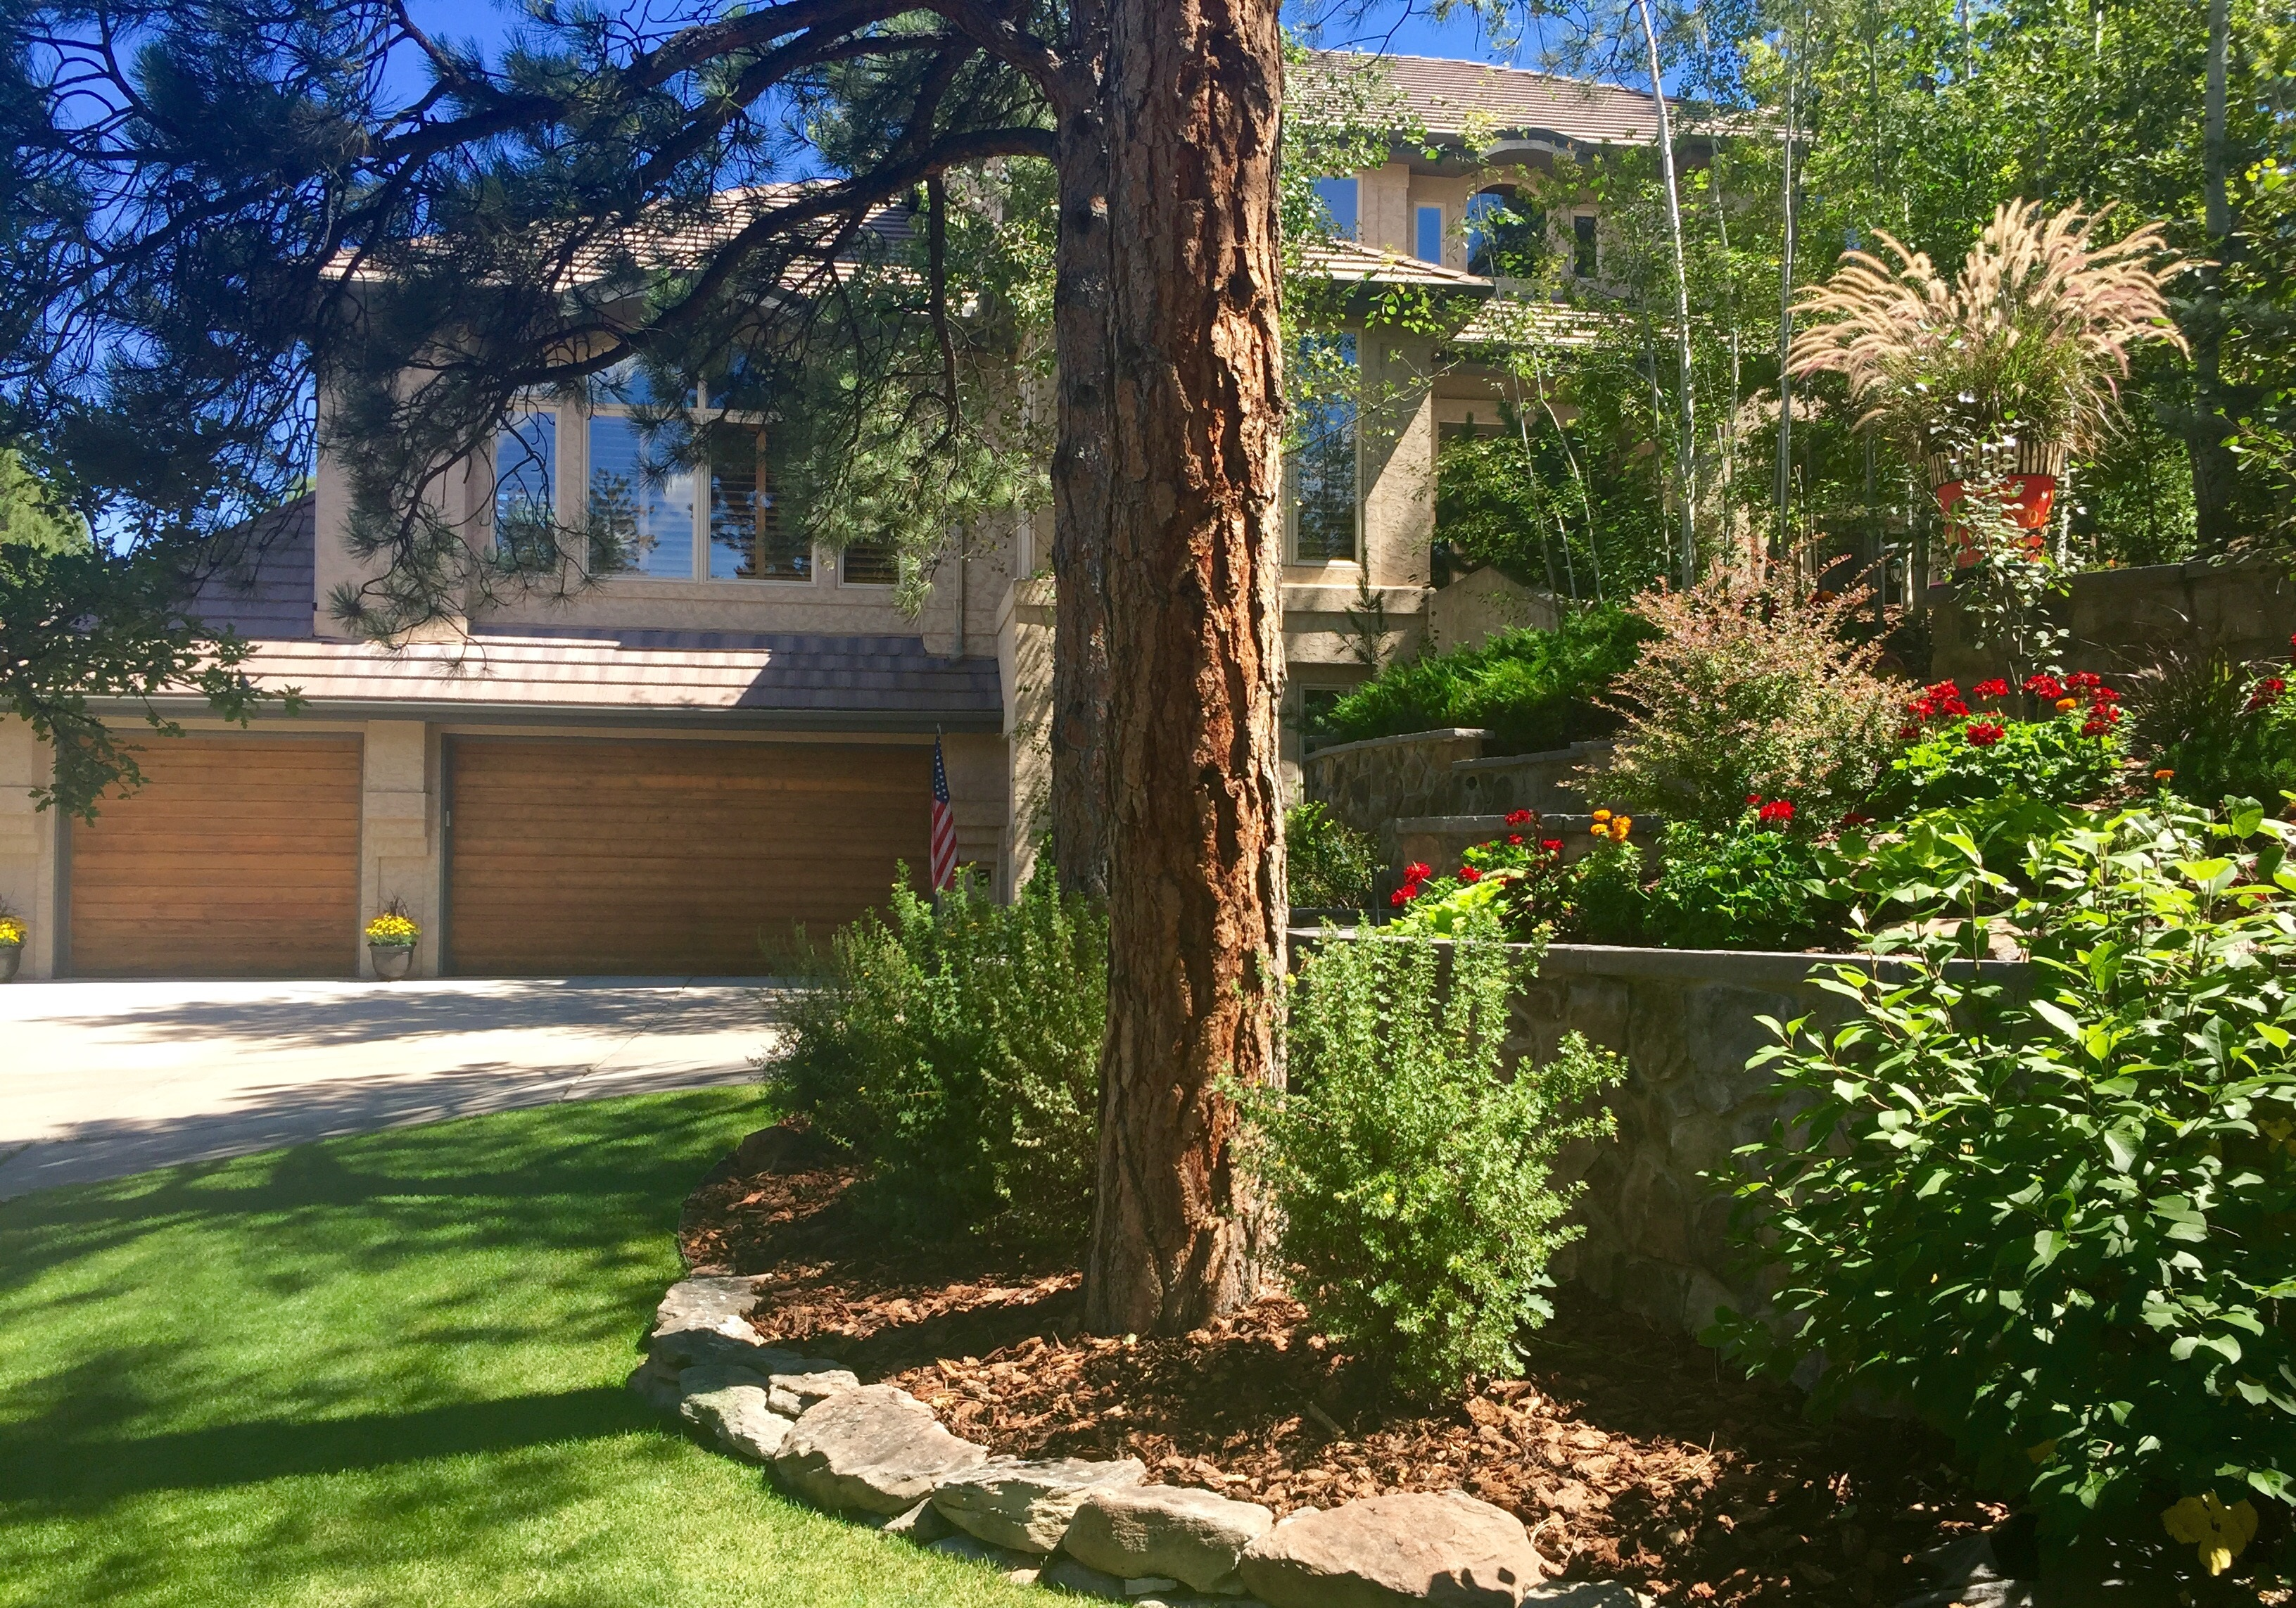 Single Family Home for Sale at Colorado Living at it's Finest with Park Like Setting 245 Country Club Pkwy Castle Pines Village, Castle Rock, Colorado, 80108 United States